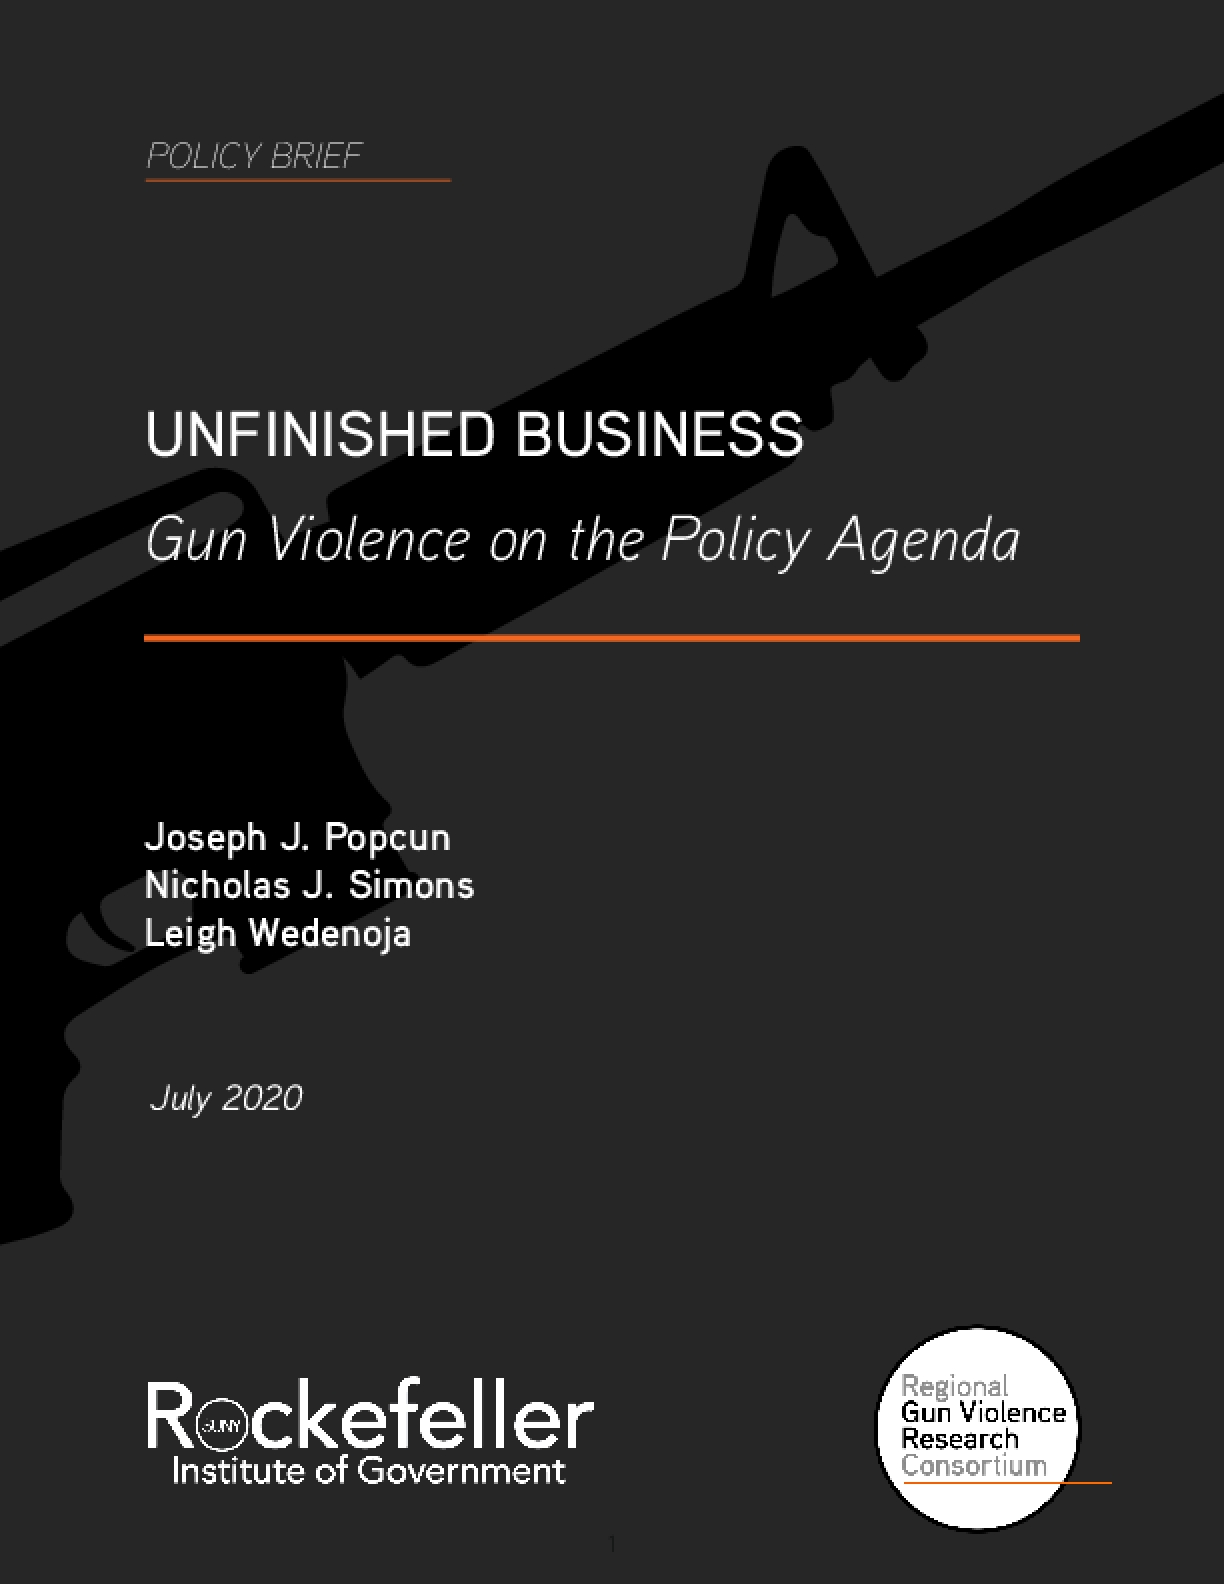 Unfinished Business: Gun Violence on the Policy Agenda